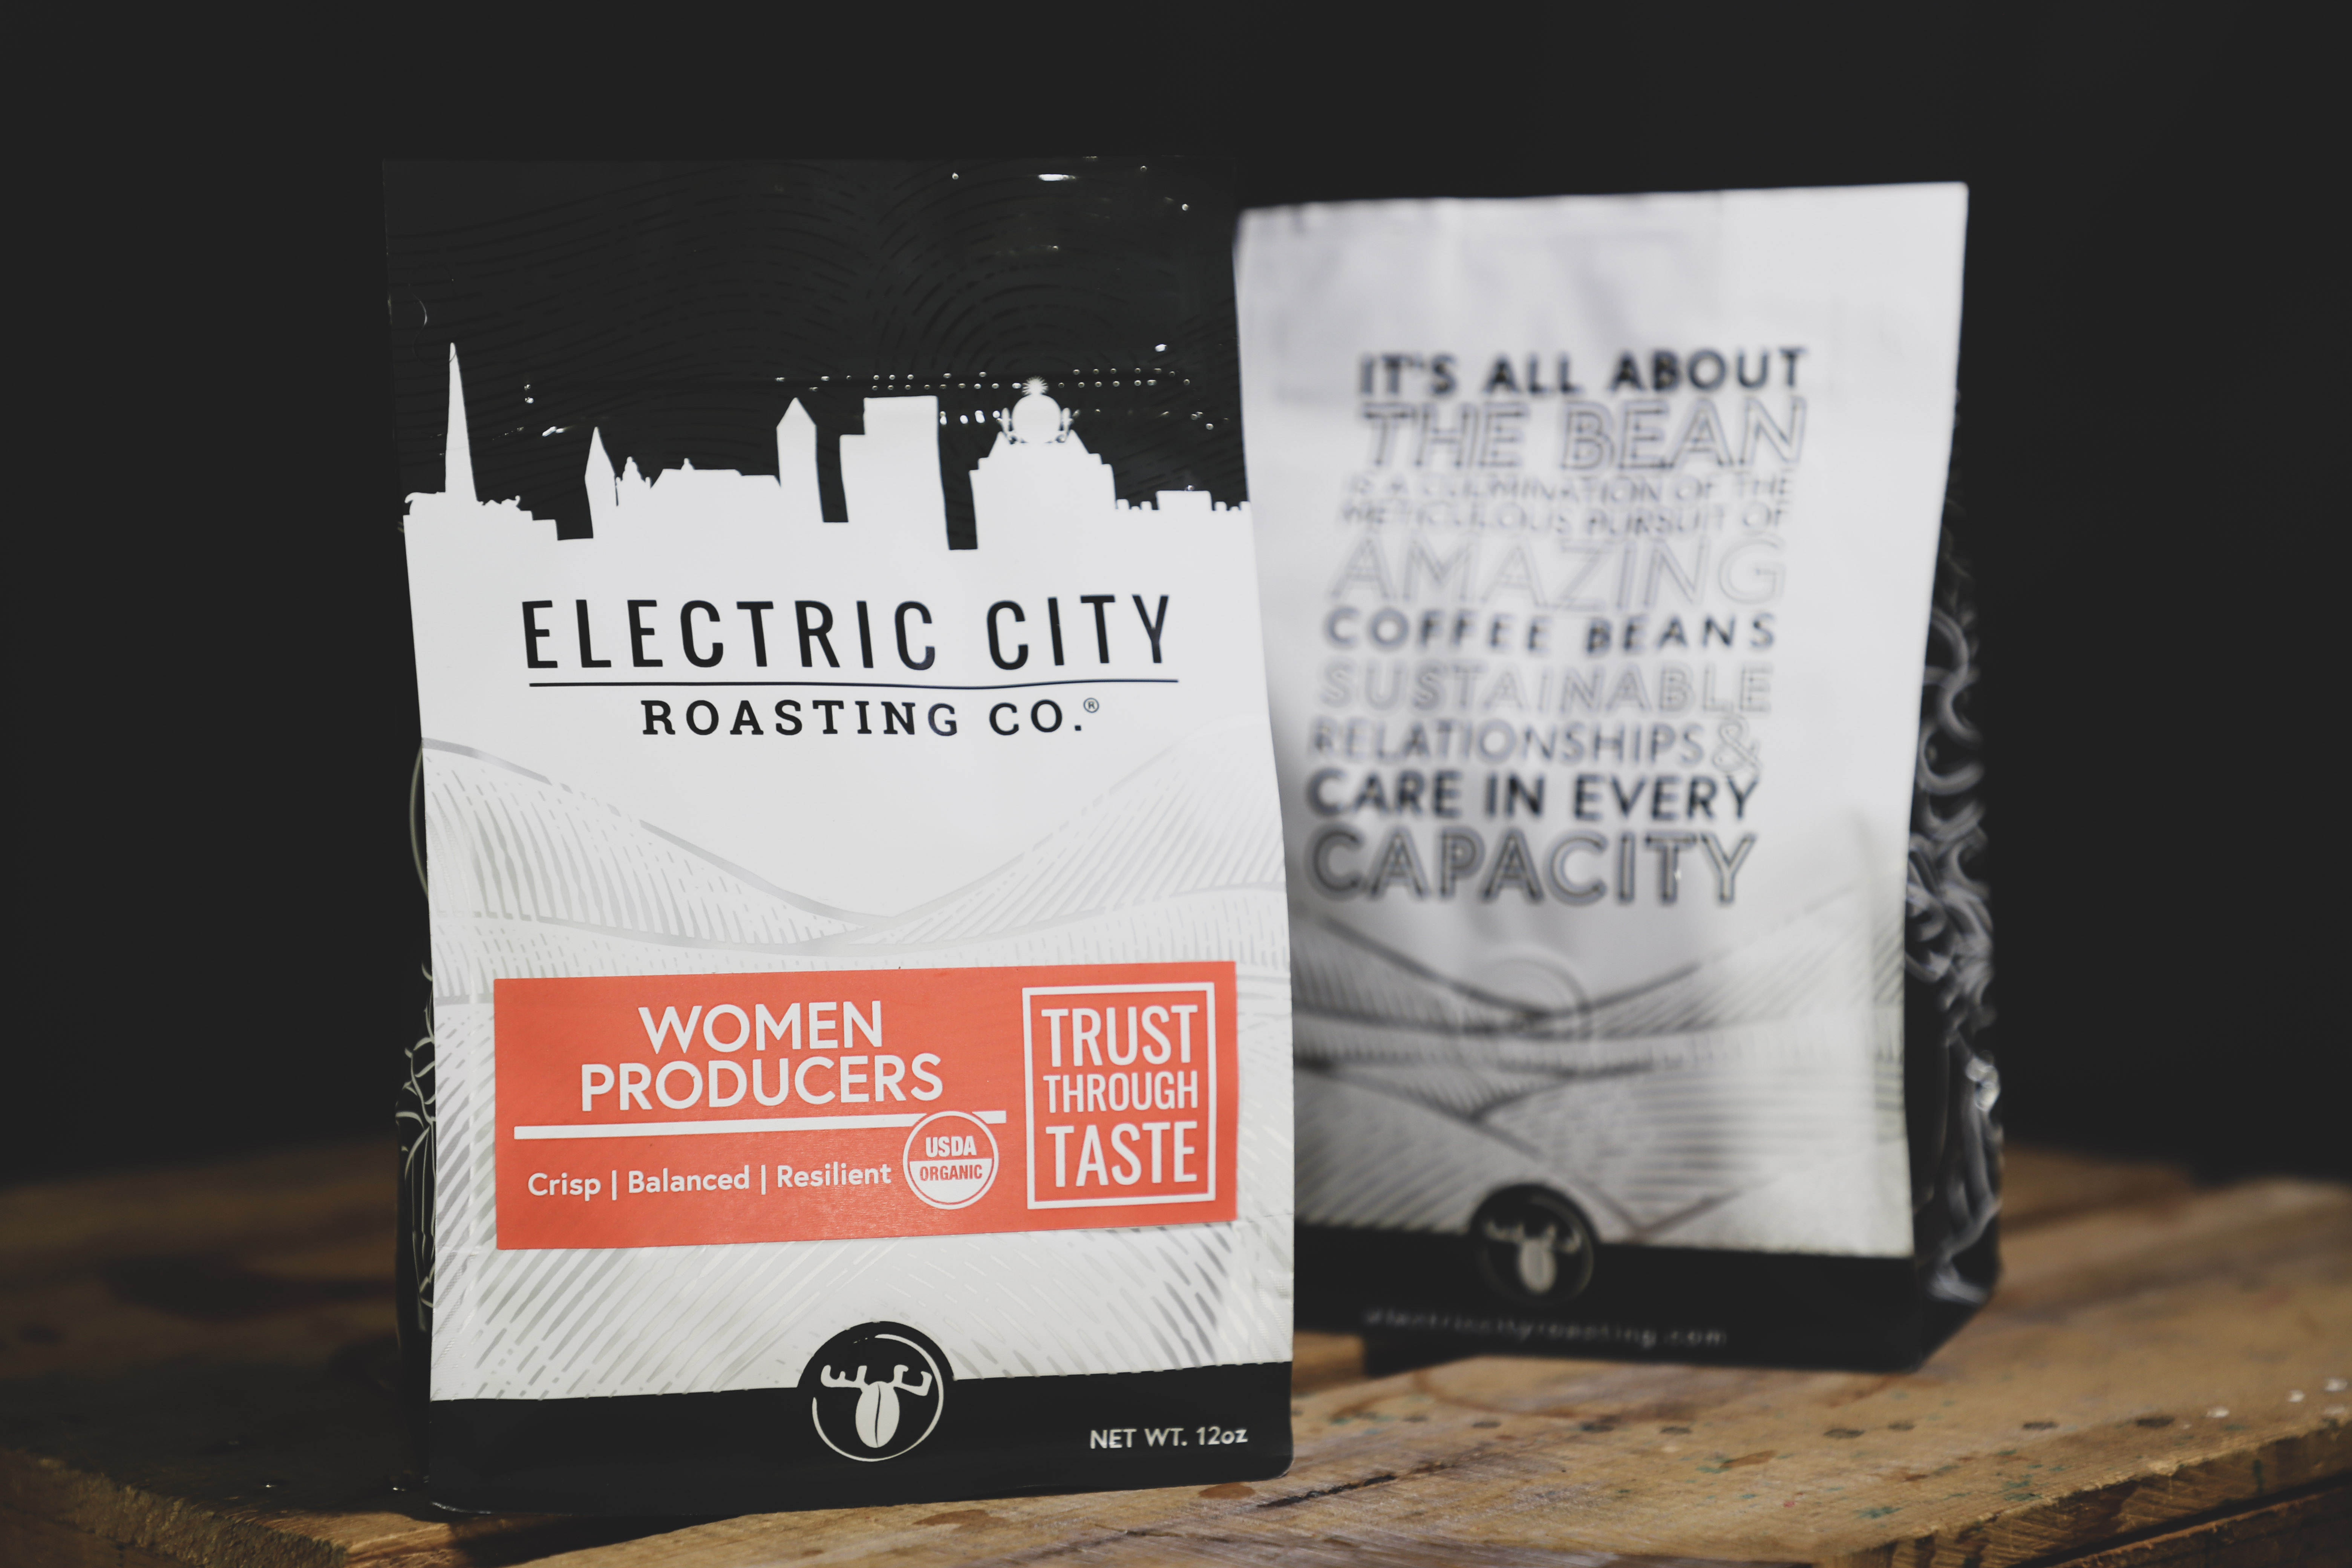 Two 12oz bags of Women producers coffee by electric city roasting